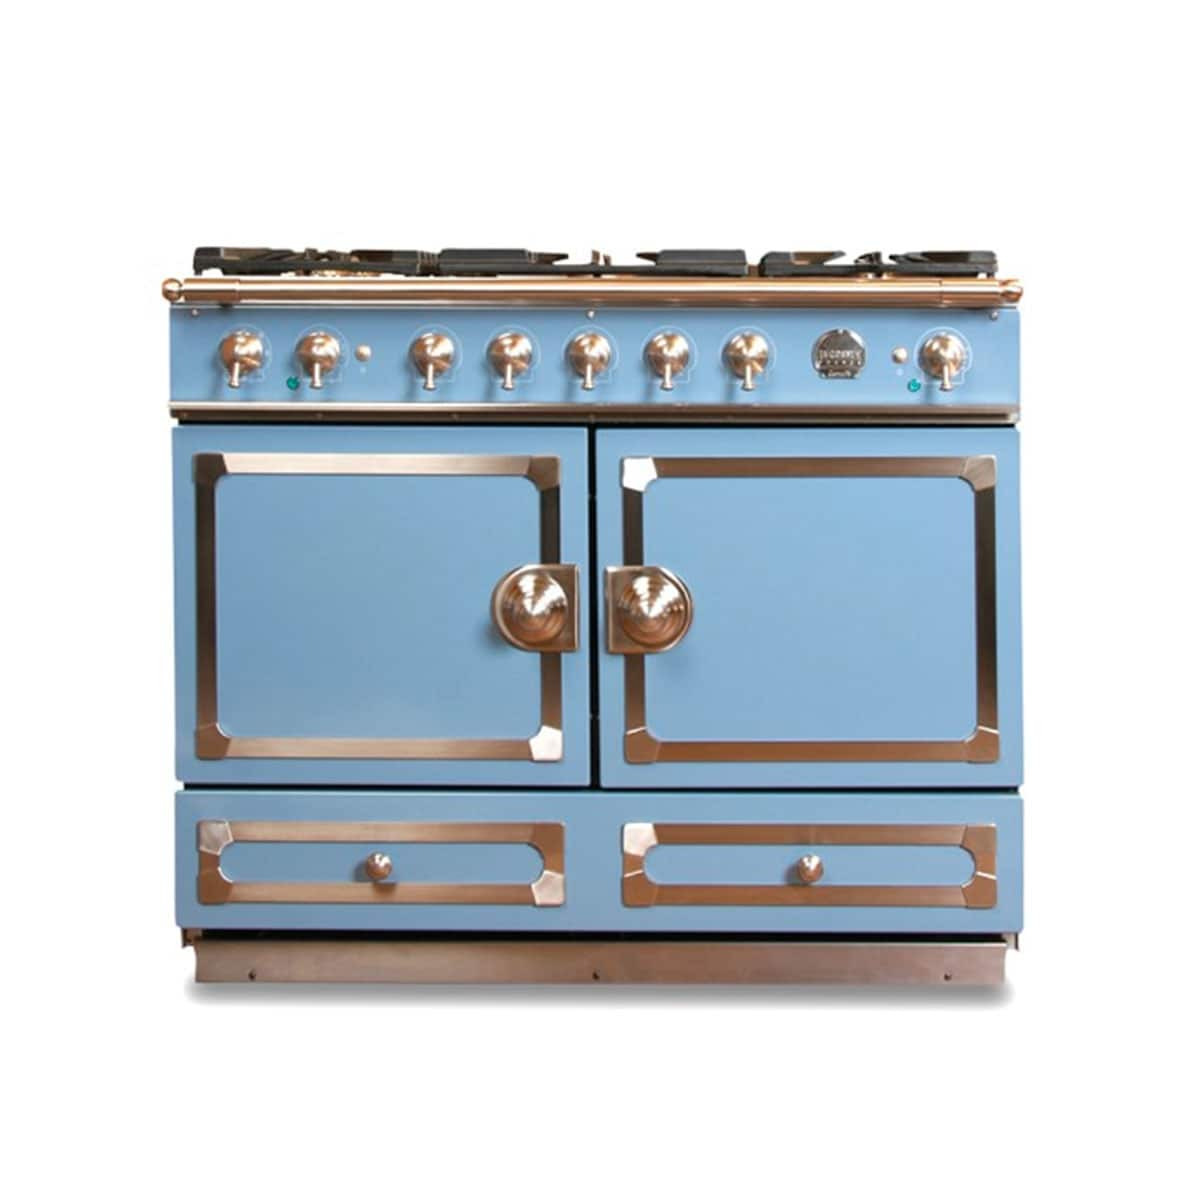 Beyond Smeg: 10 Colorful Appliances to Brighten Up Your Kitchen: gallery image 8